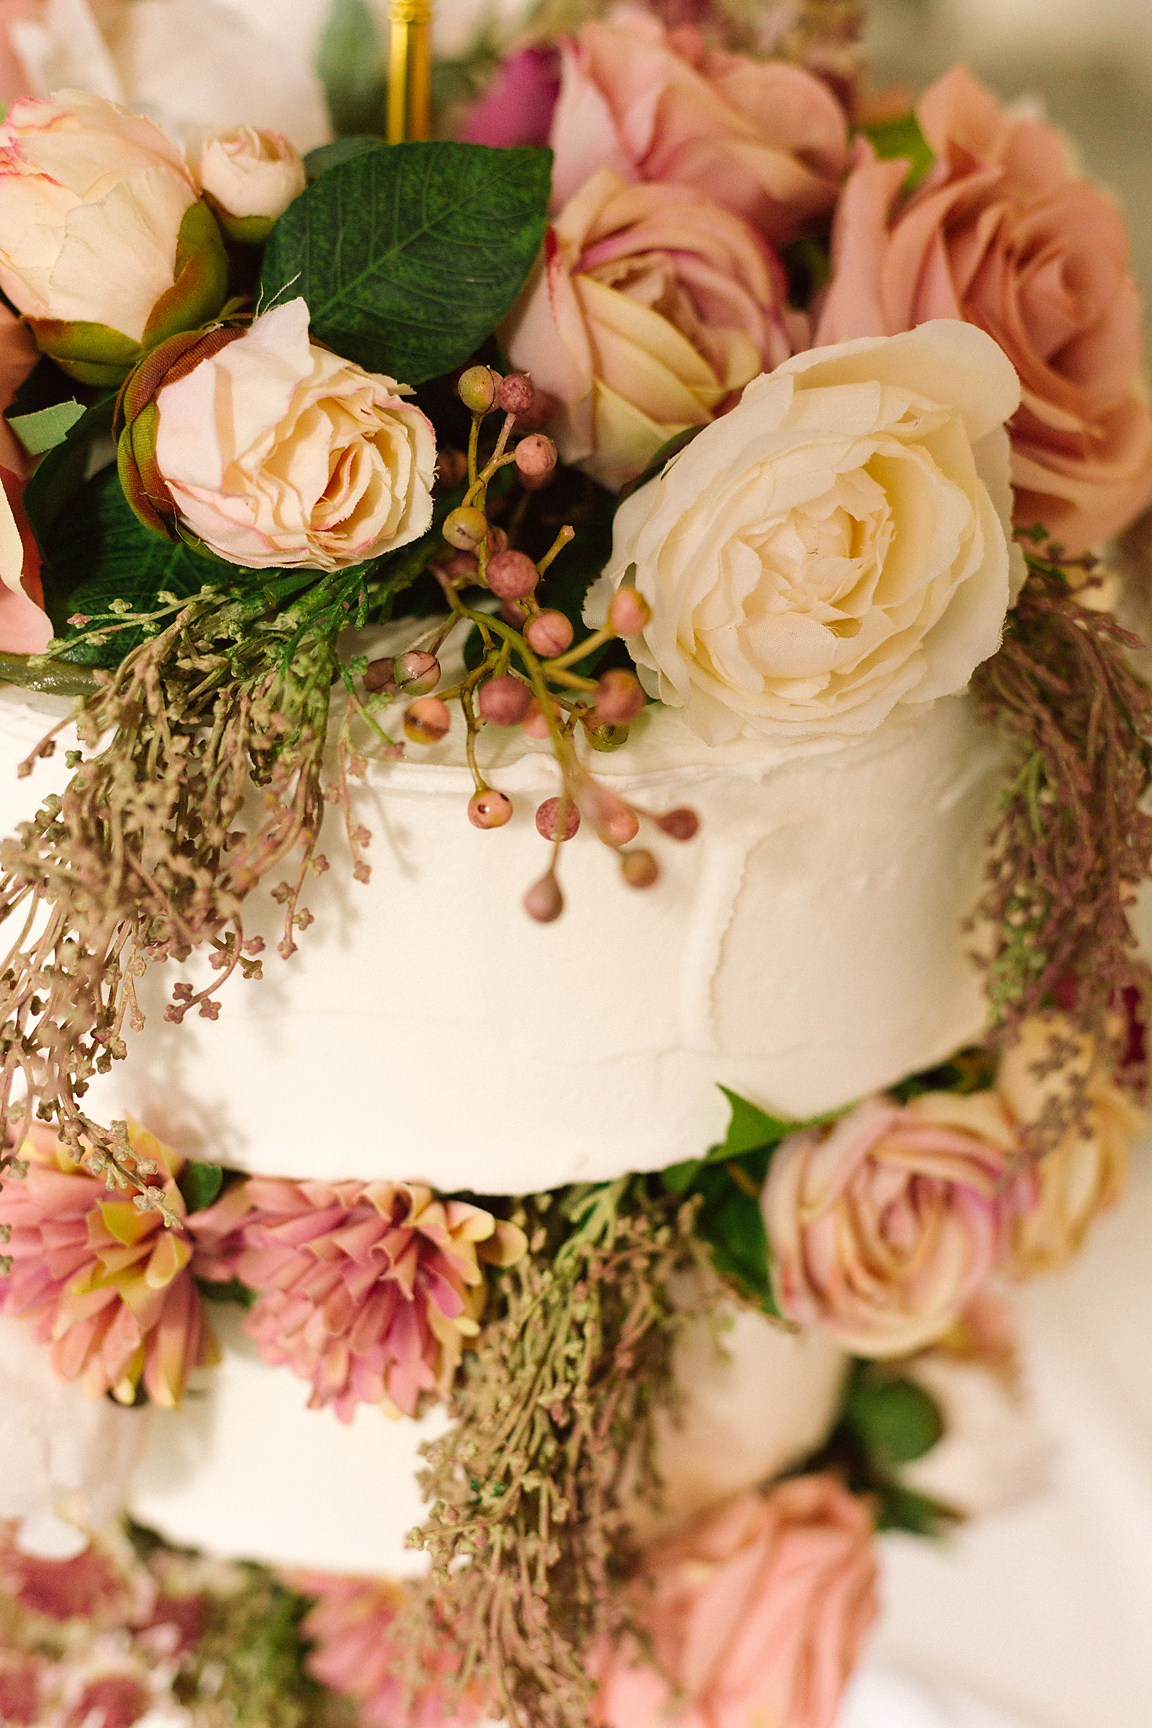 Cake by The Sweet Society Co. Photography by Poppy & Sage Photography.